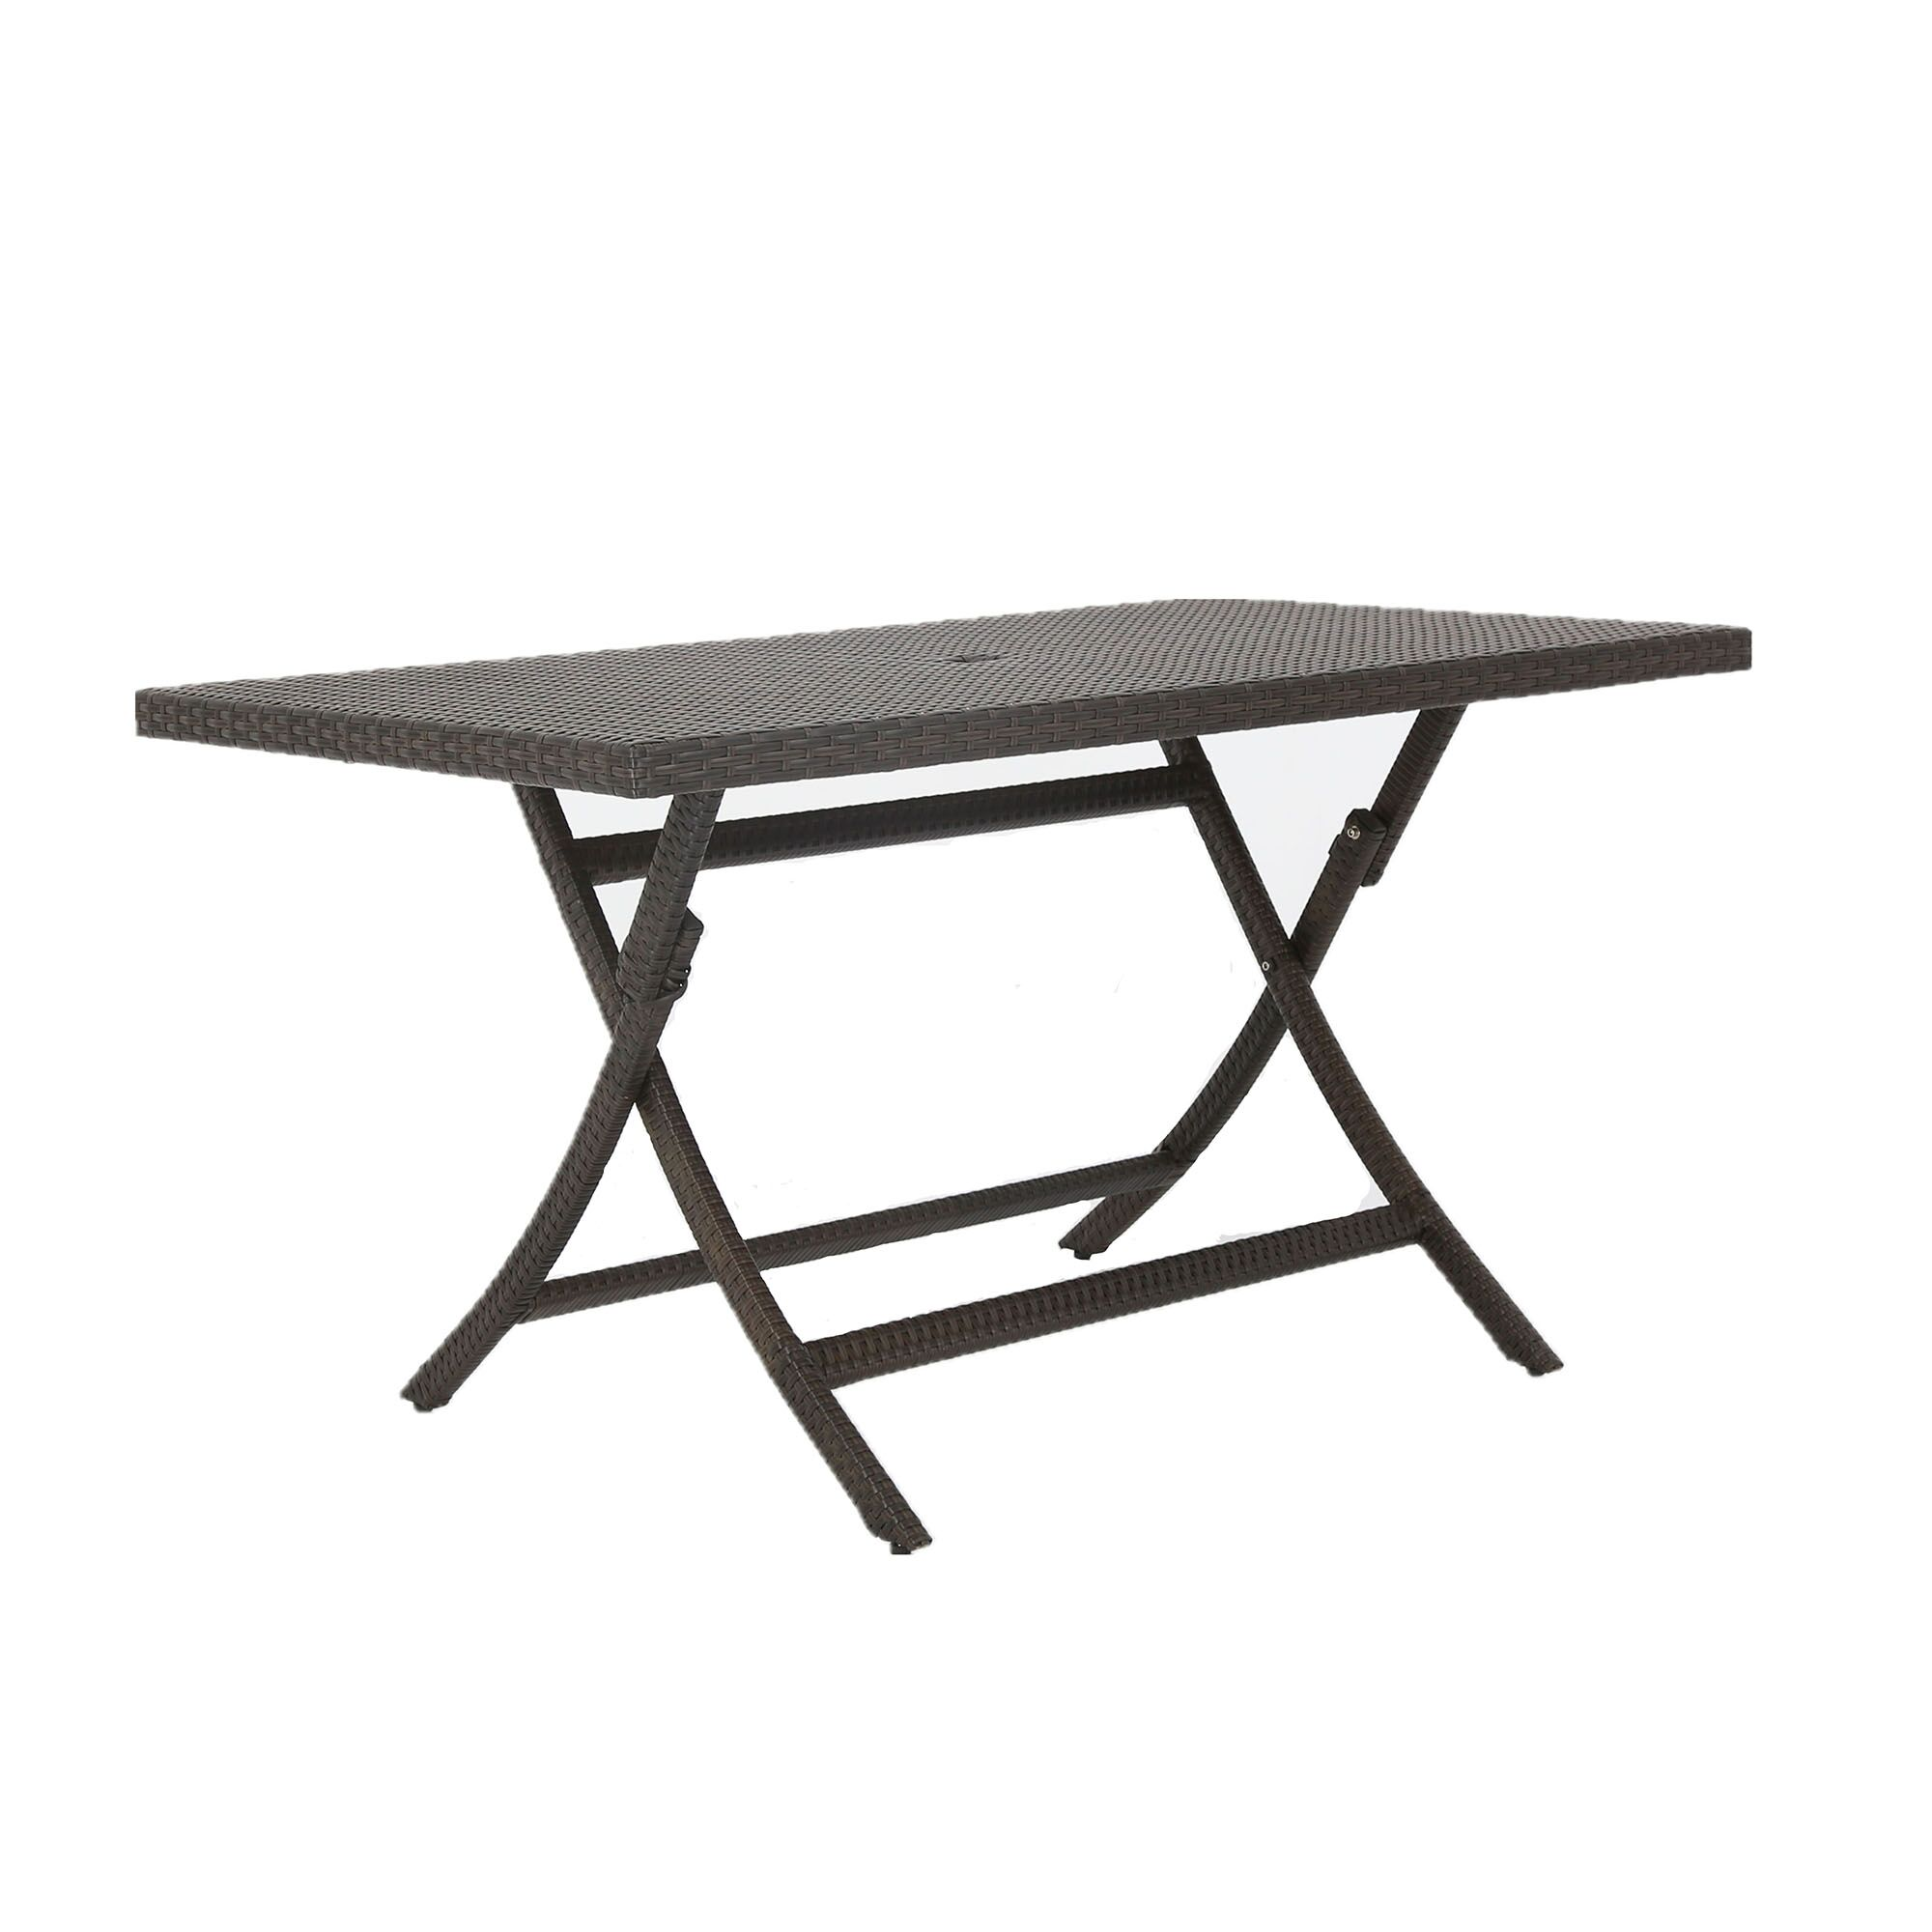 Kalb Extendable Wicker Dining Table